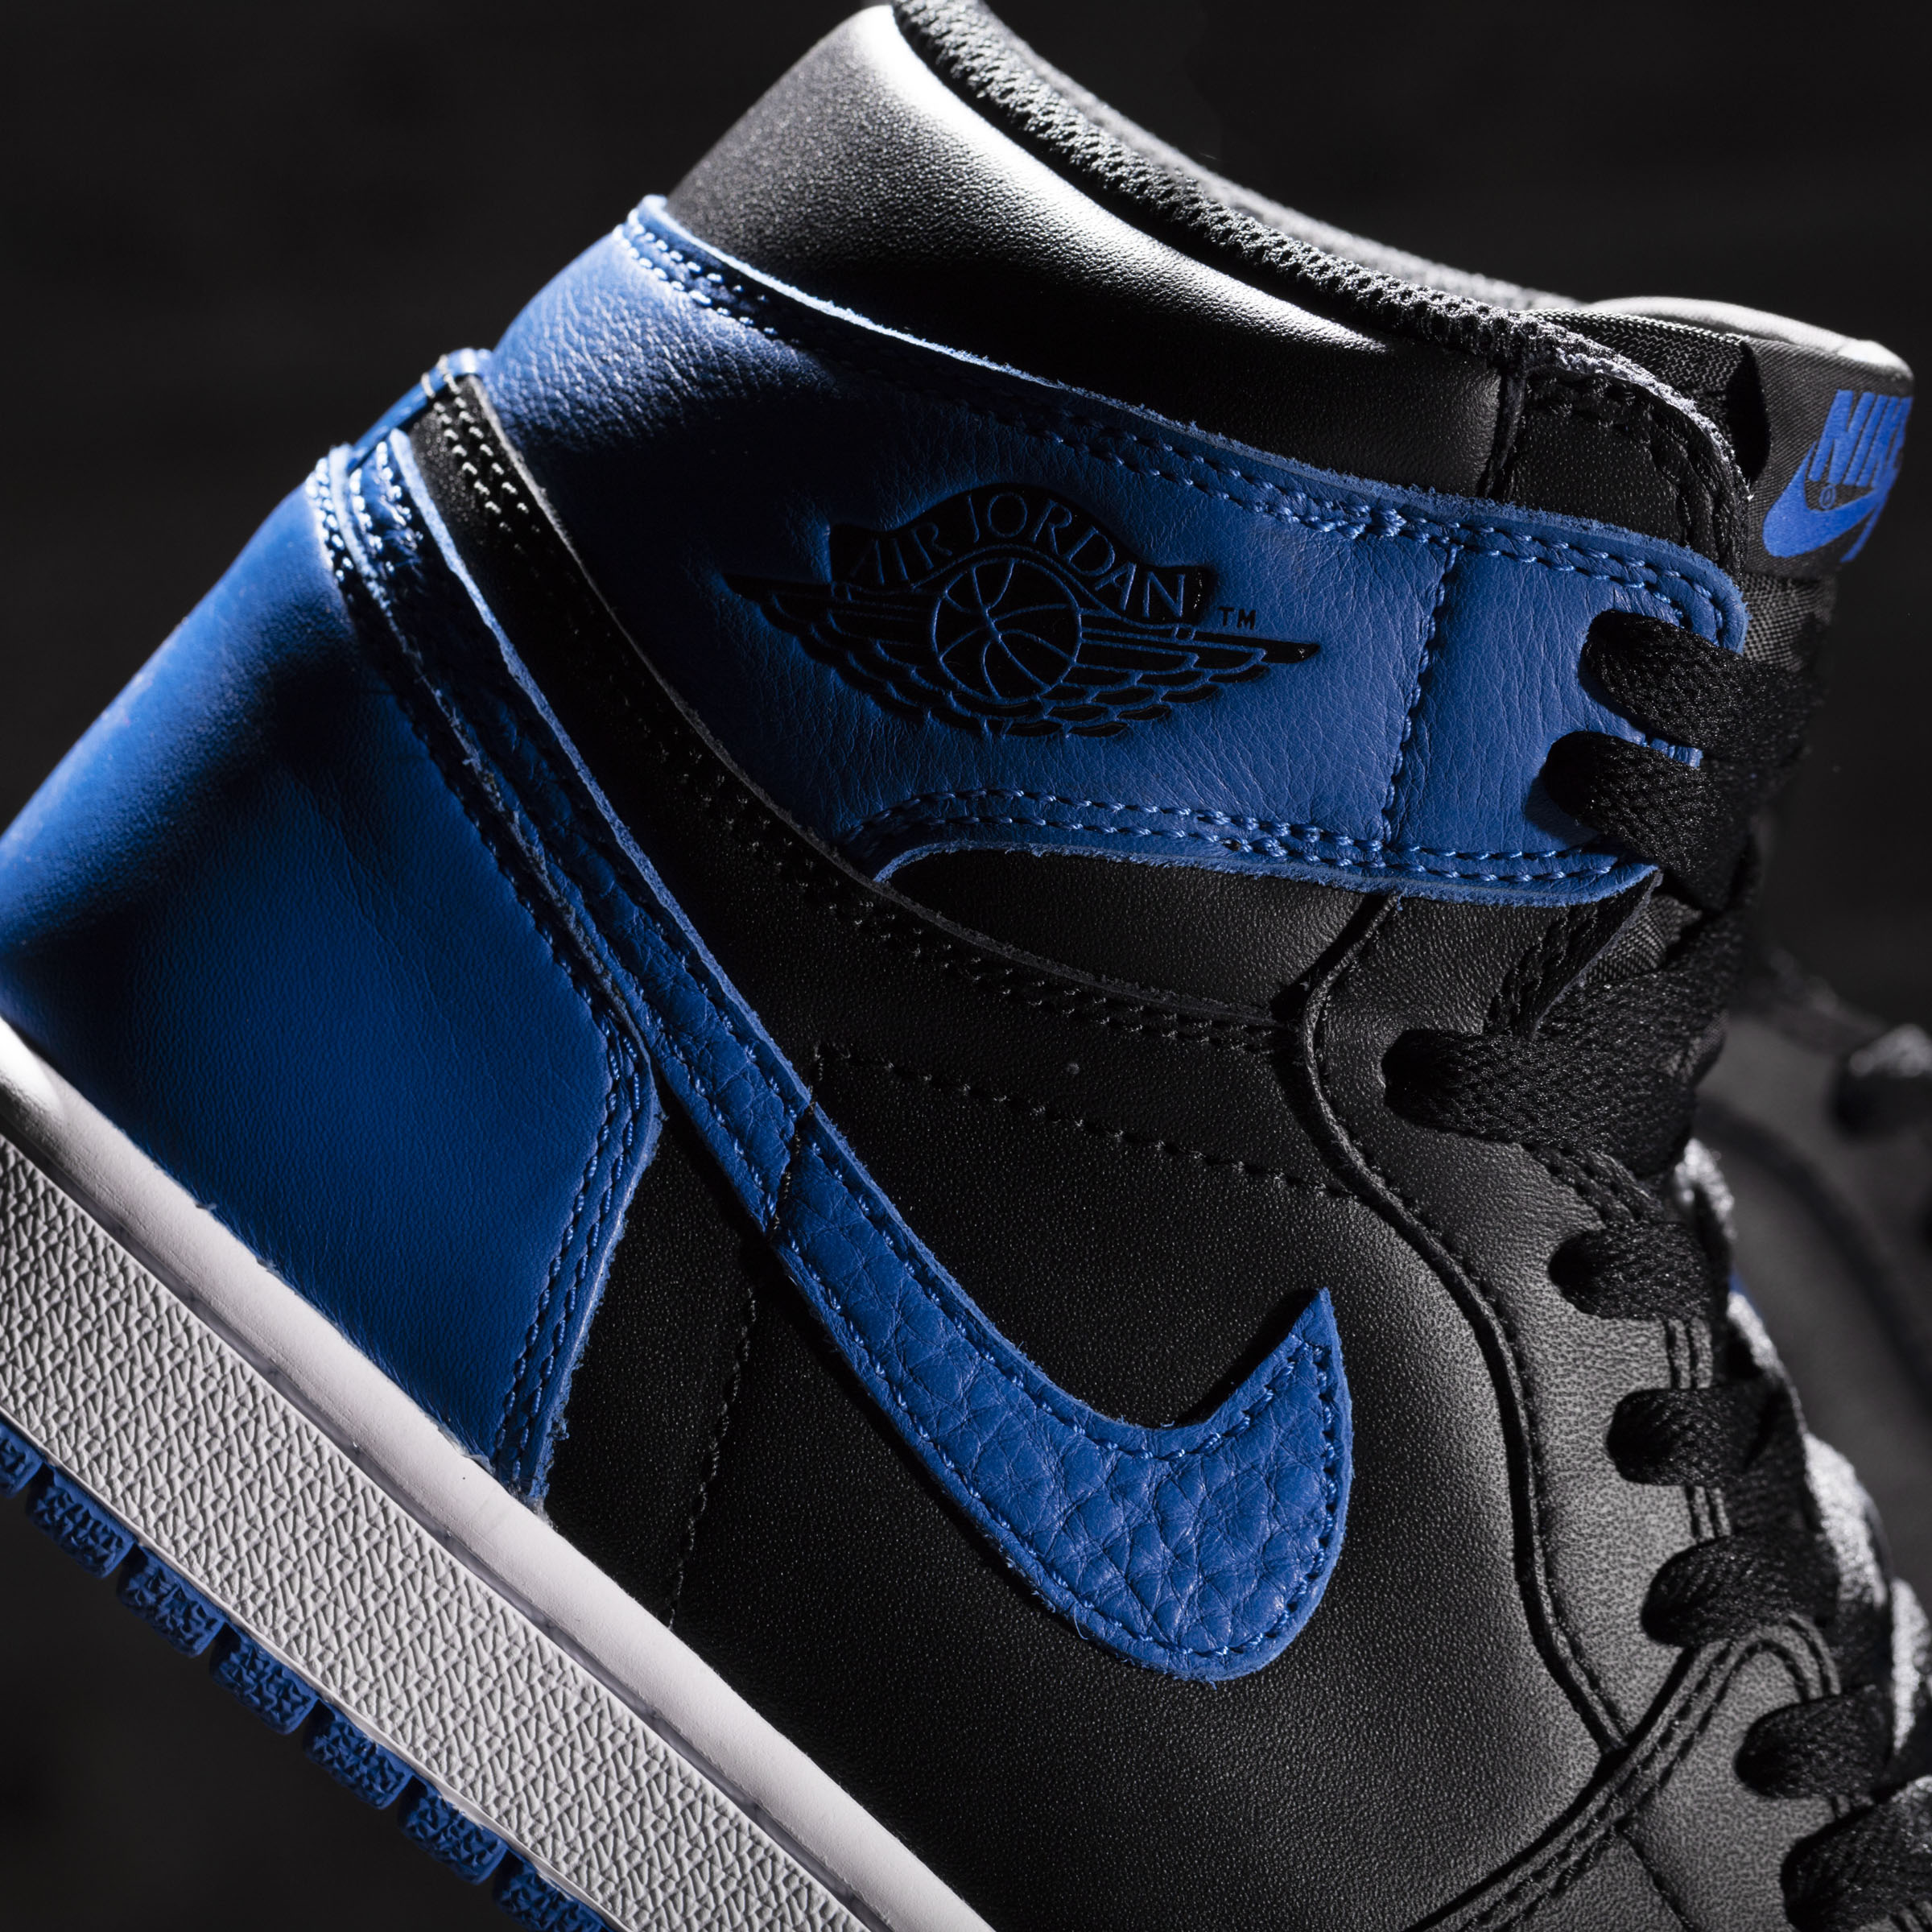 640a949765db80 ... retro high og royal · Air Jordan 1 Royal Size 11 Deadstock 100%  Authentic